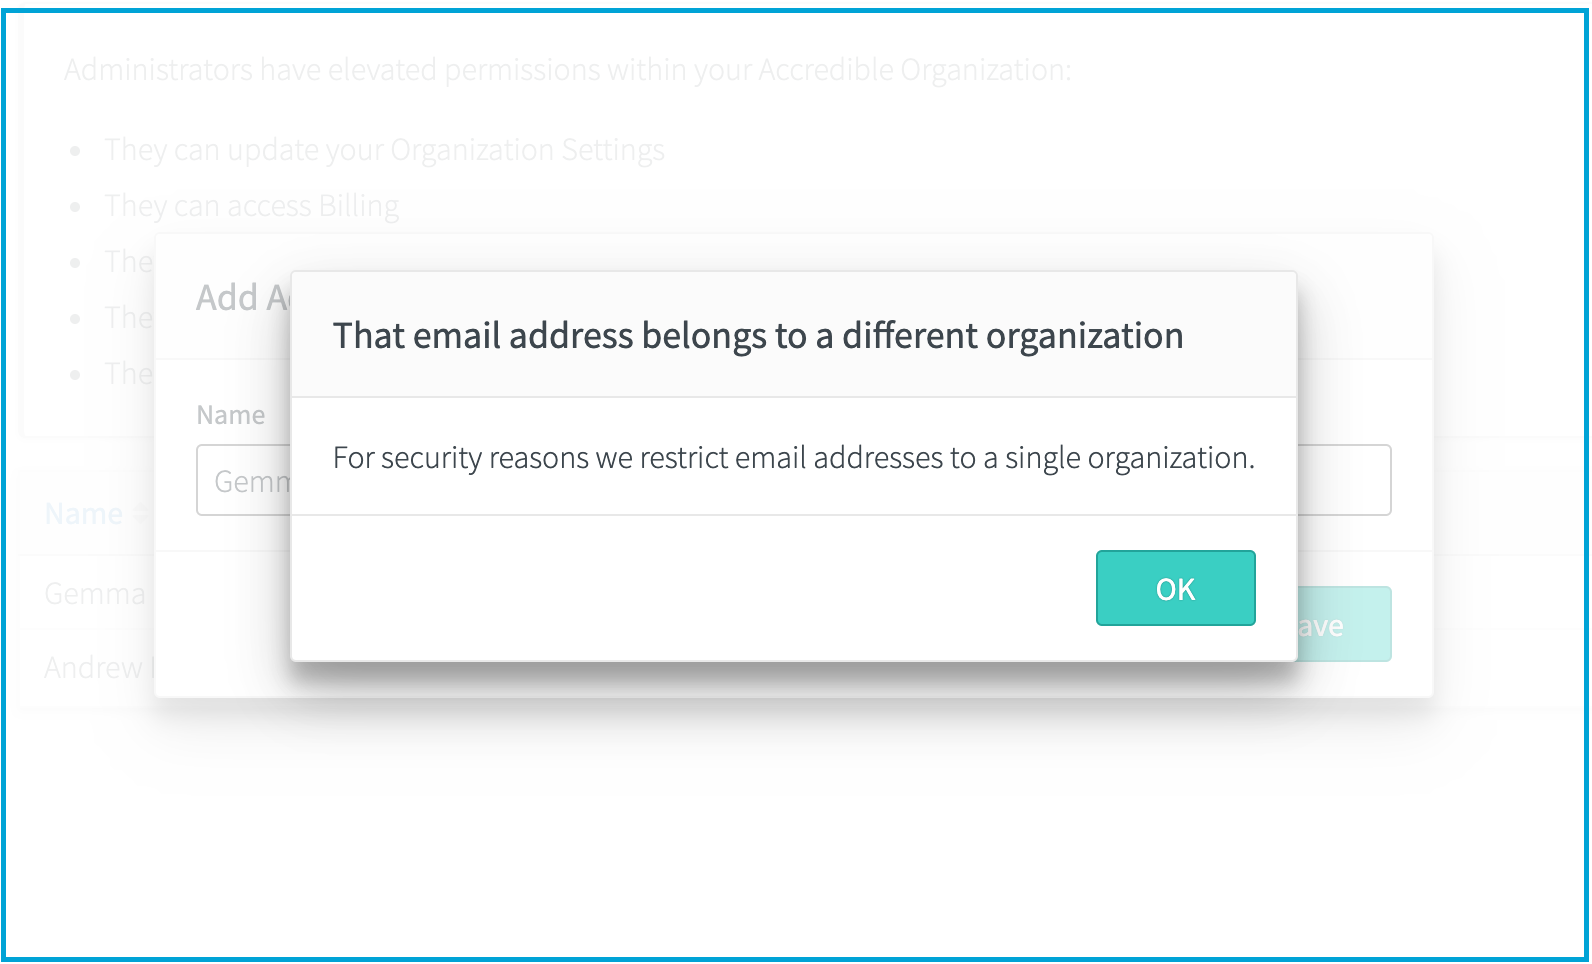 That email address belongs to a different organization For security reasons we restrict email addresses to a single organization